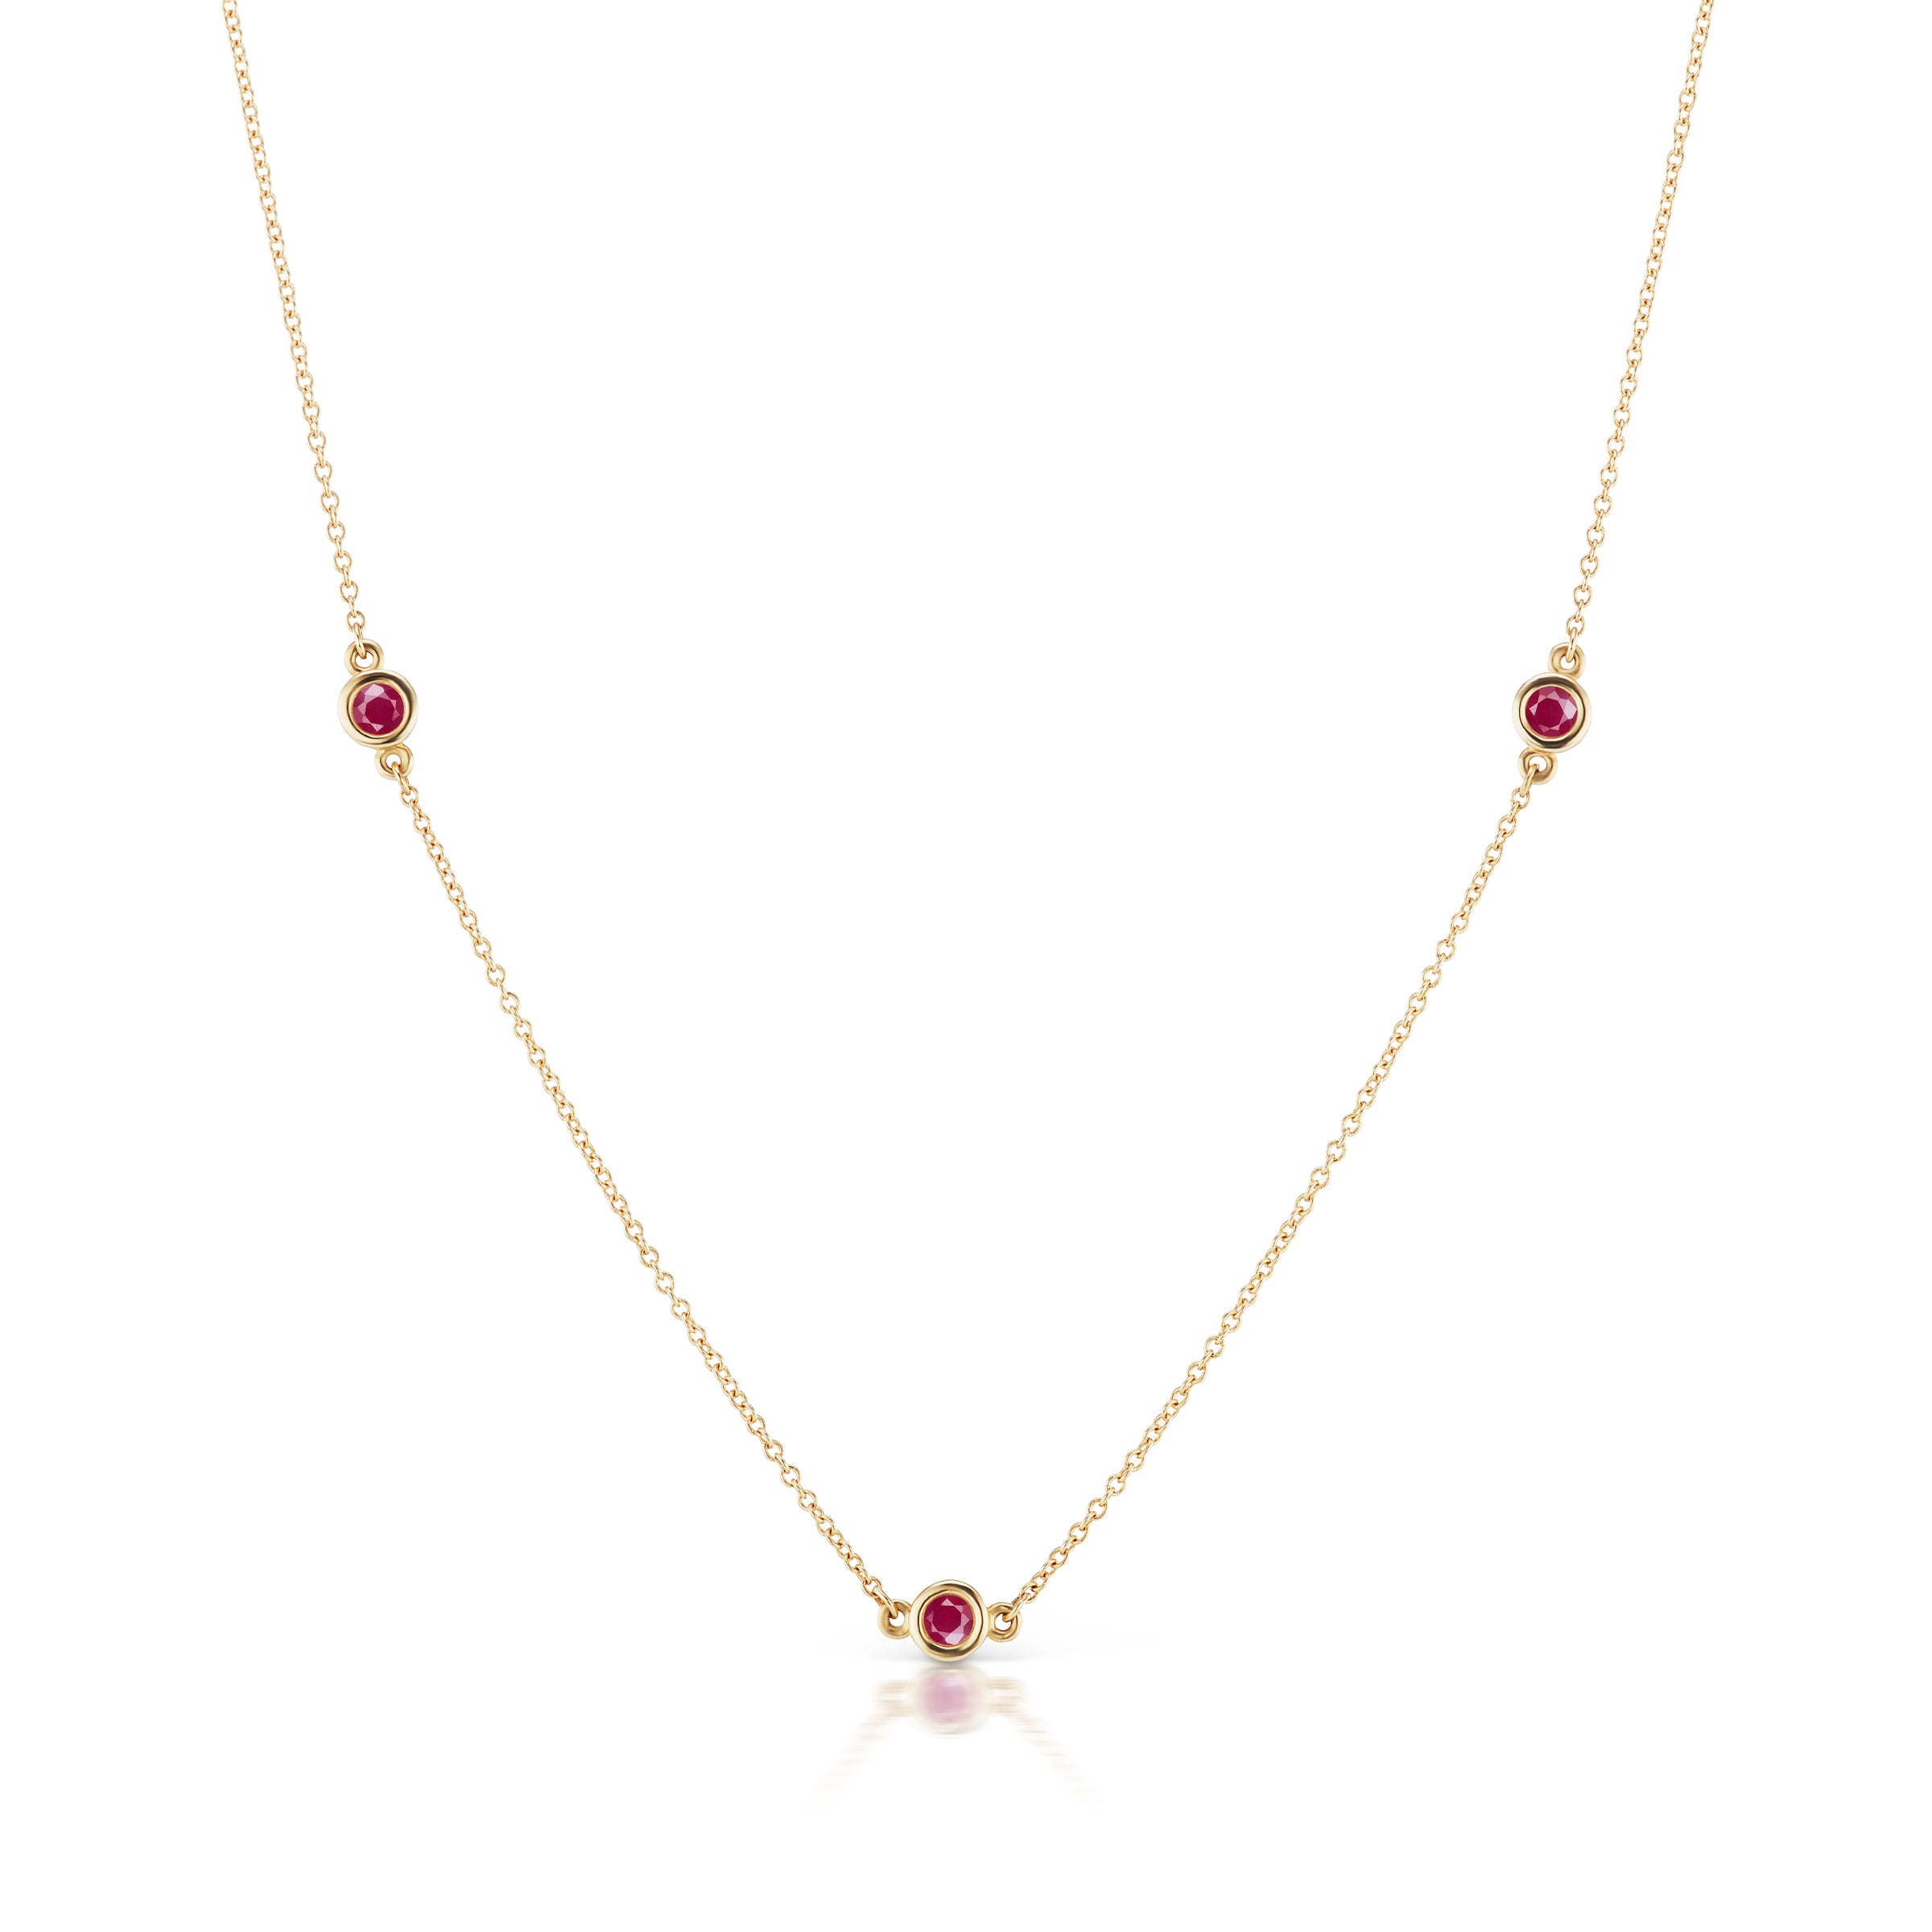 The Gold Three Gemstone Confetti Necklace